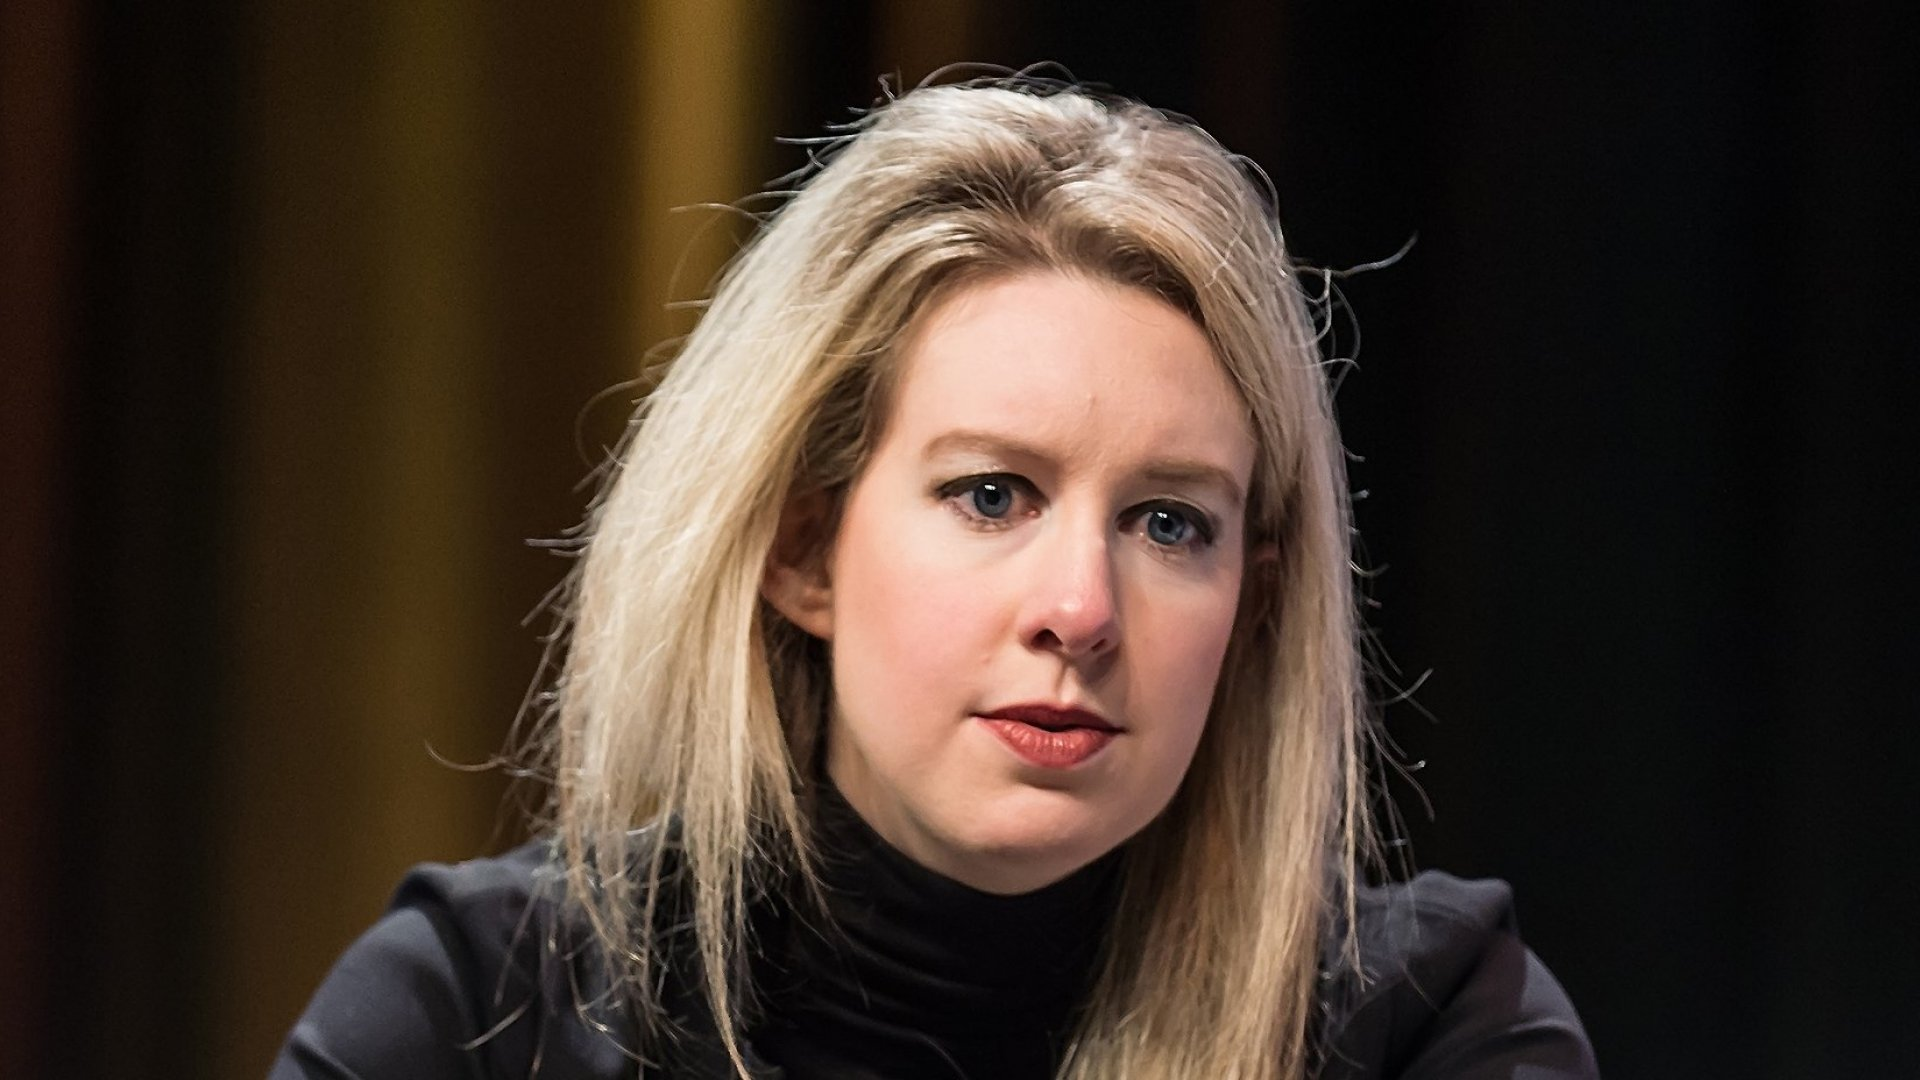 This Blood Tech CEO Shares How to Avoid Becoming the Next Elizabeth Holmes